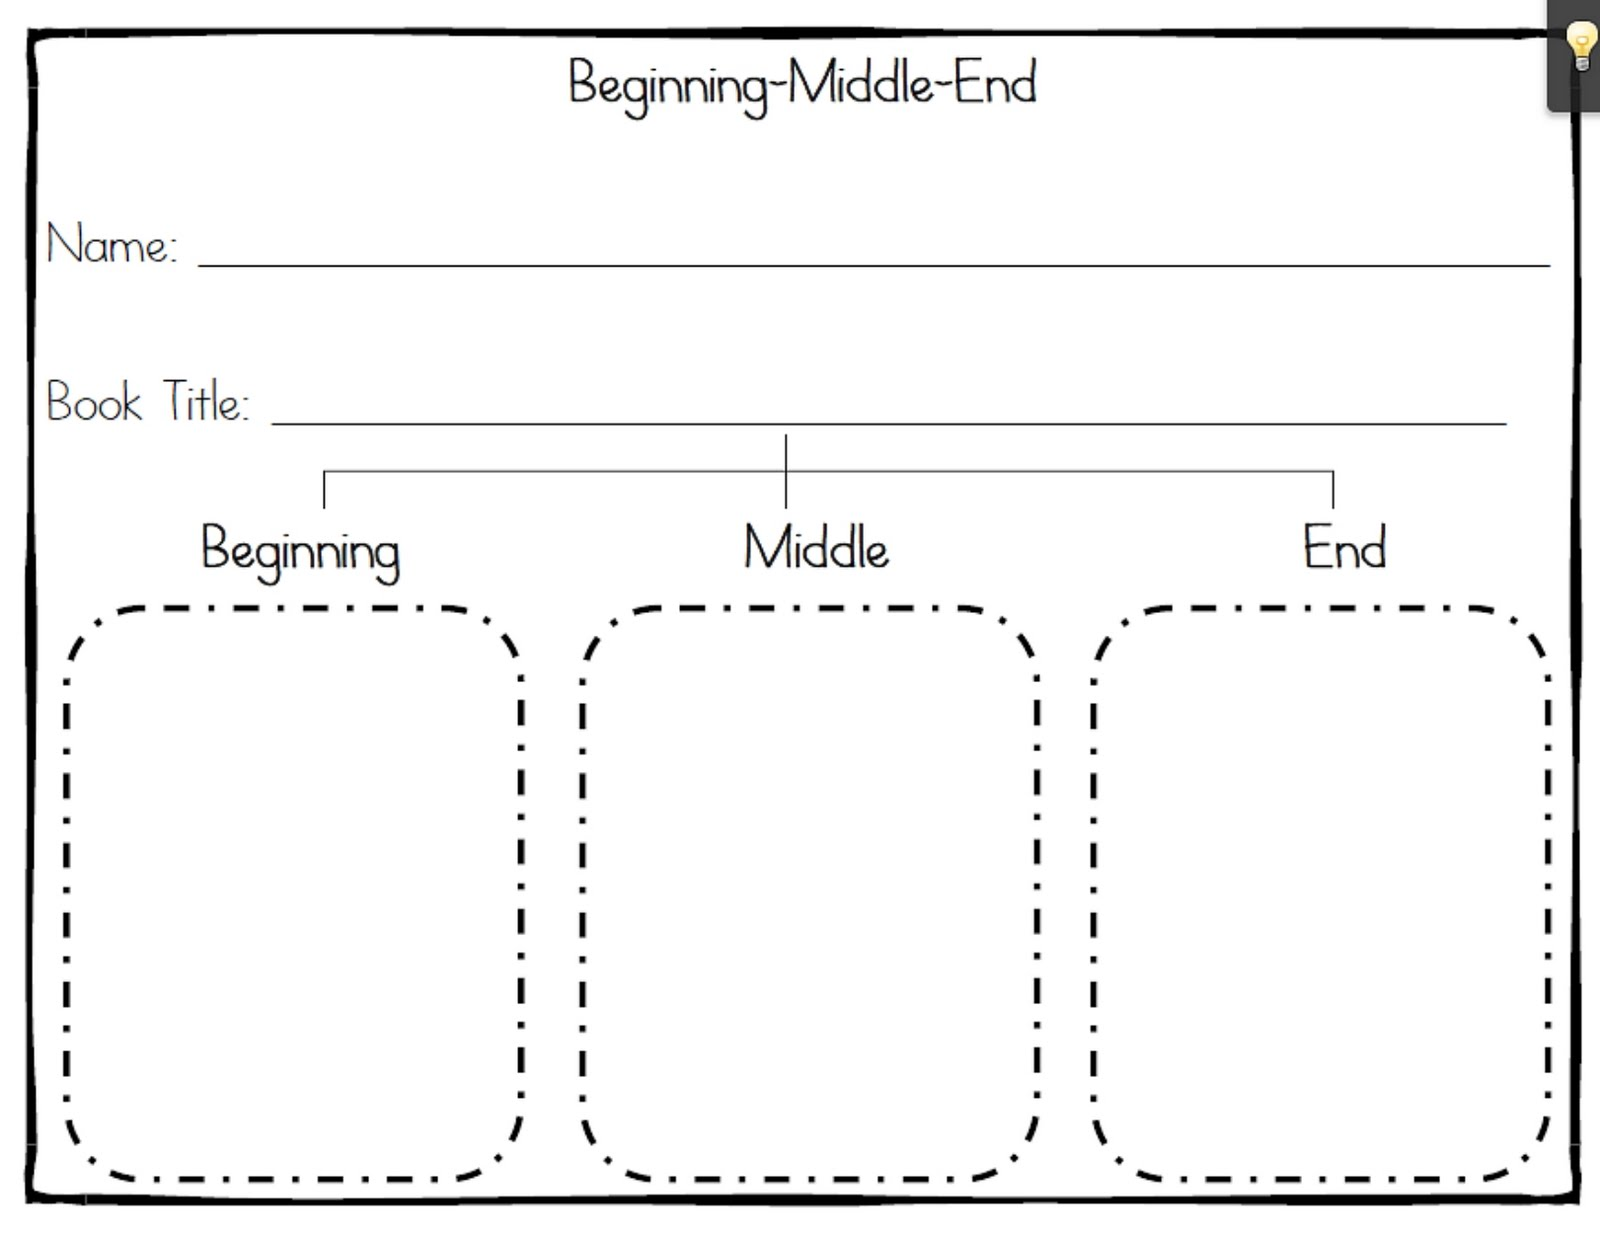 Beginning Middle And End Worksheets For Kindergarten – Beginning Middle End Worksheet Kindergarten